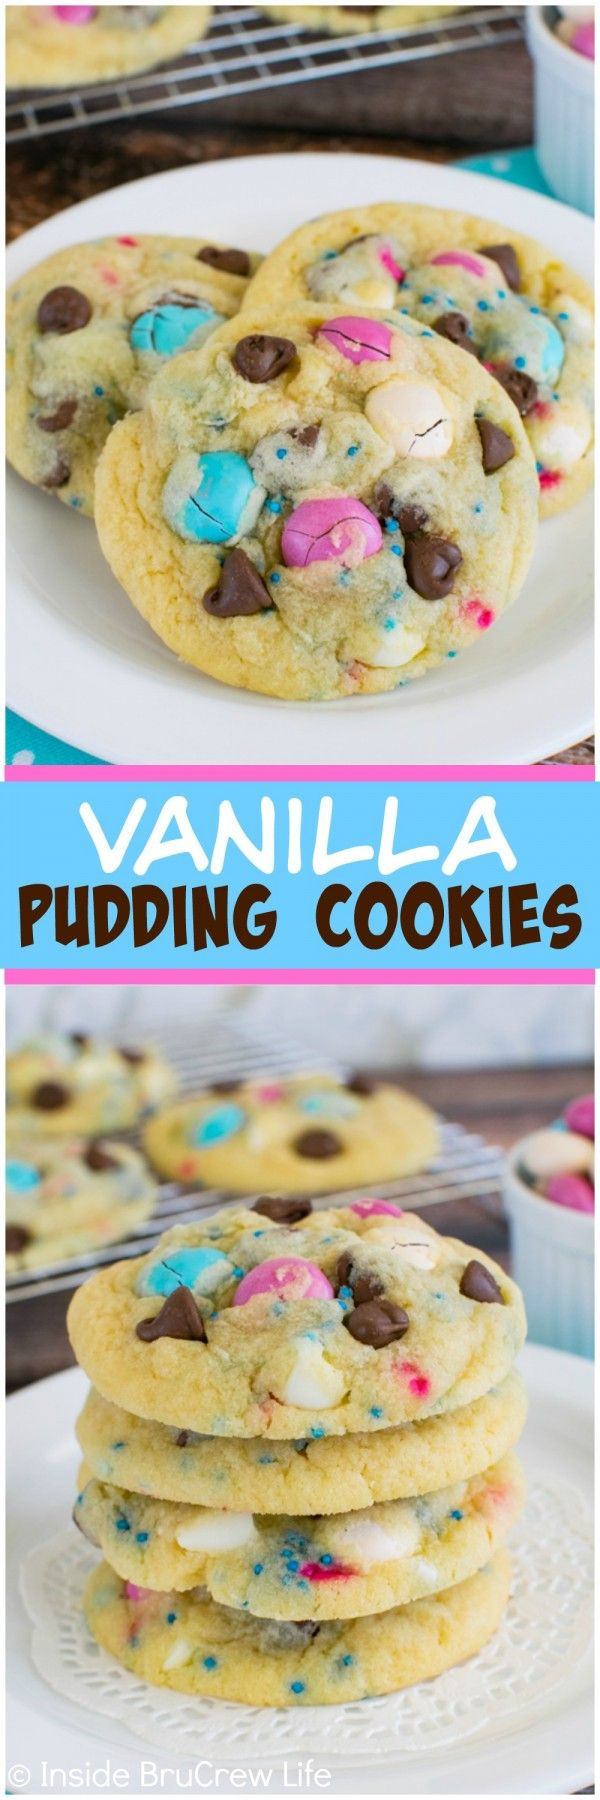 Vanilla Pudding Cookies - these soft and chewy cookies are loaded with candy, chocolate chips, and sprinkles.  Fun dessert recipe for lunch boxes.